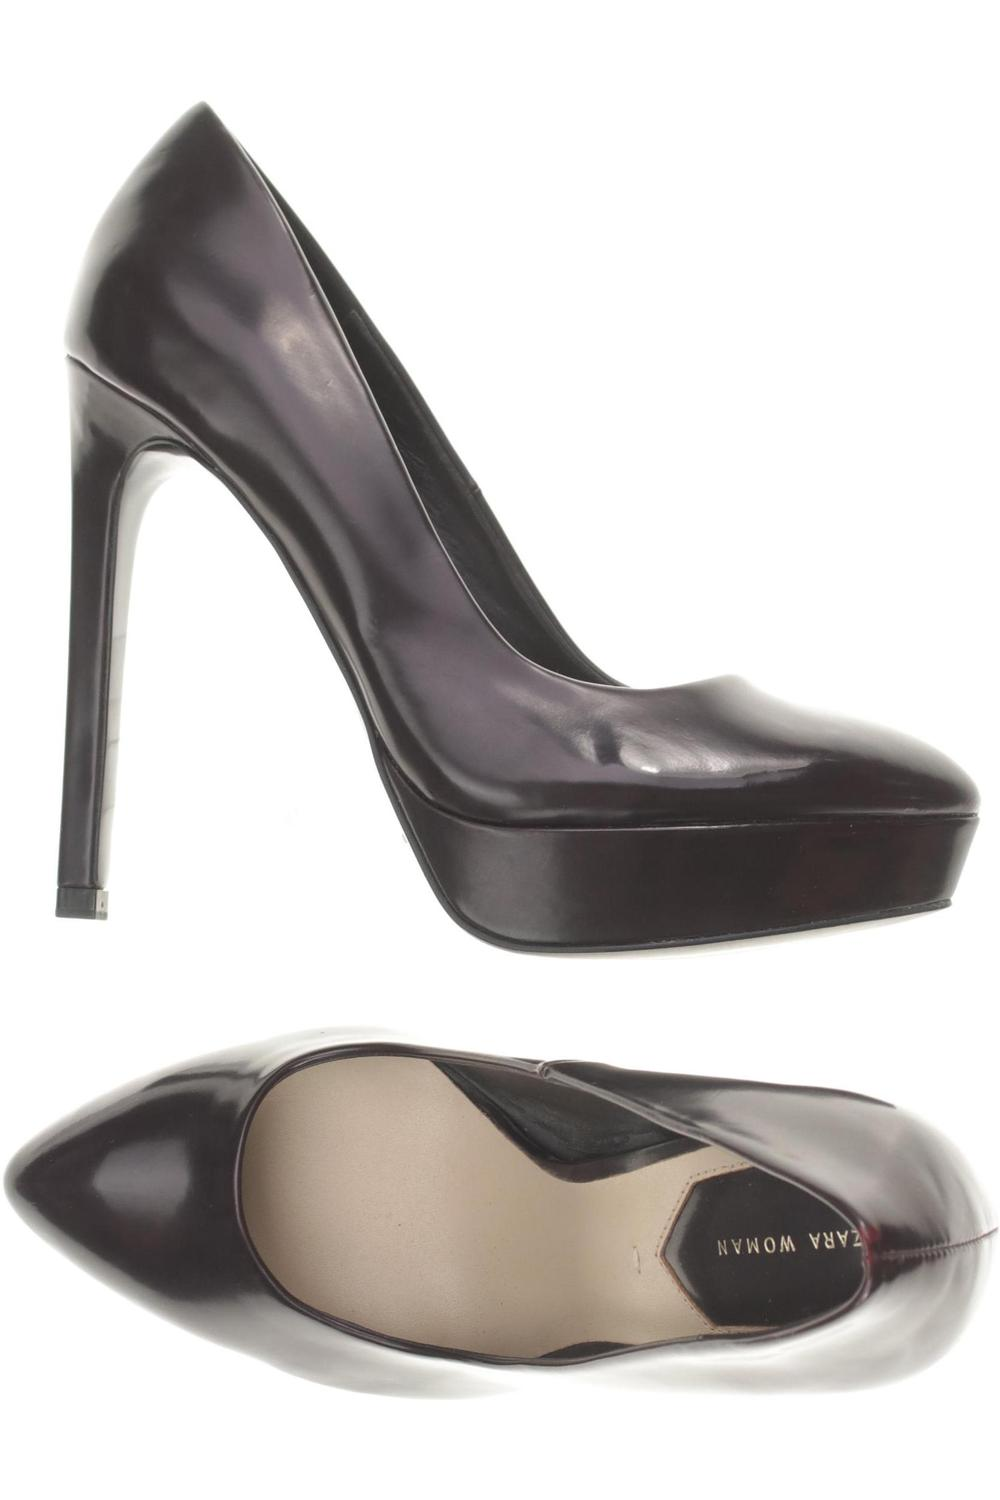 ZARA Damen Pumps DE 38 Second Hand kaufen | ubup